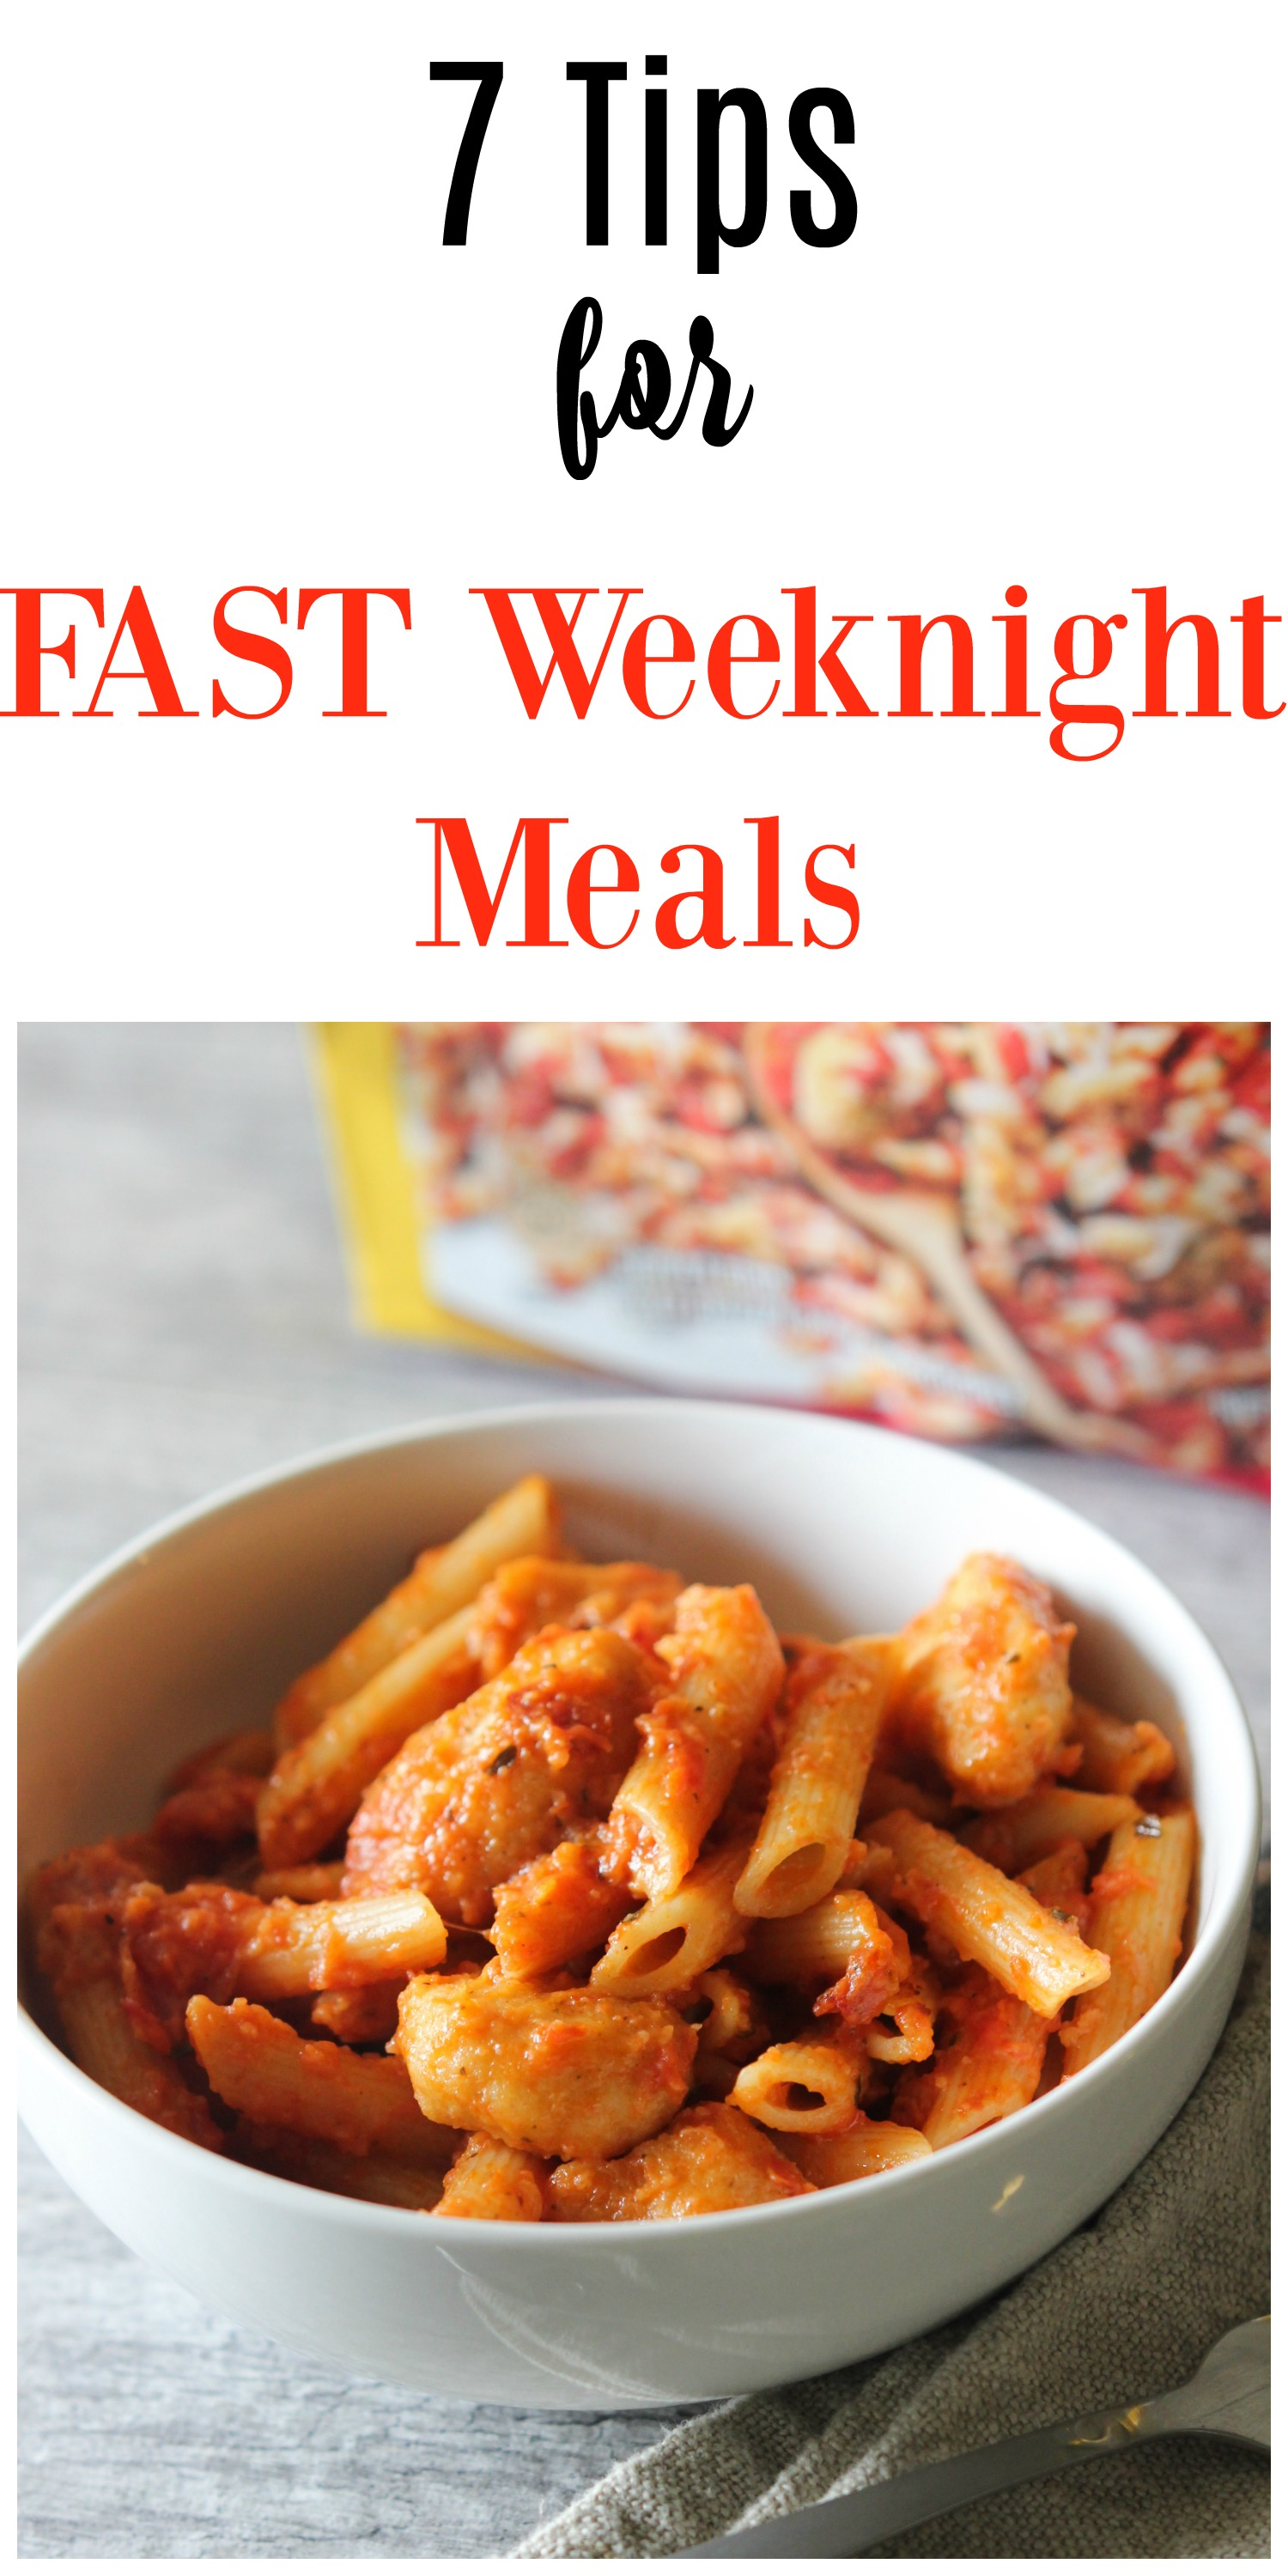 7 tips for fast weeknight meals